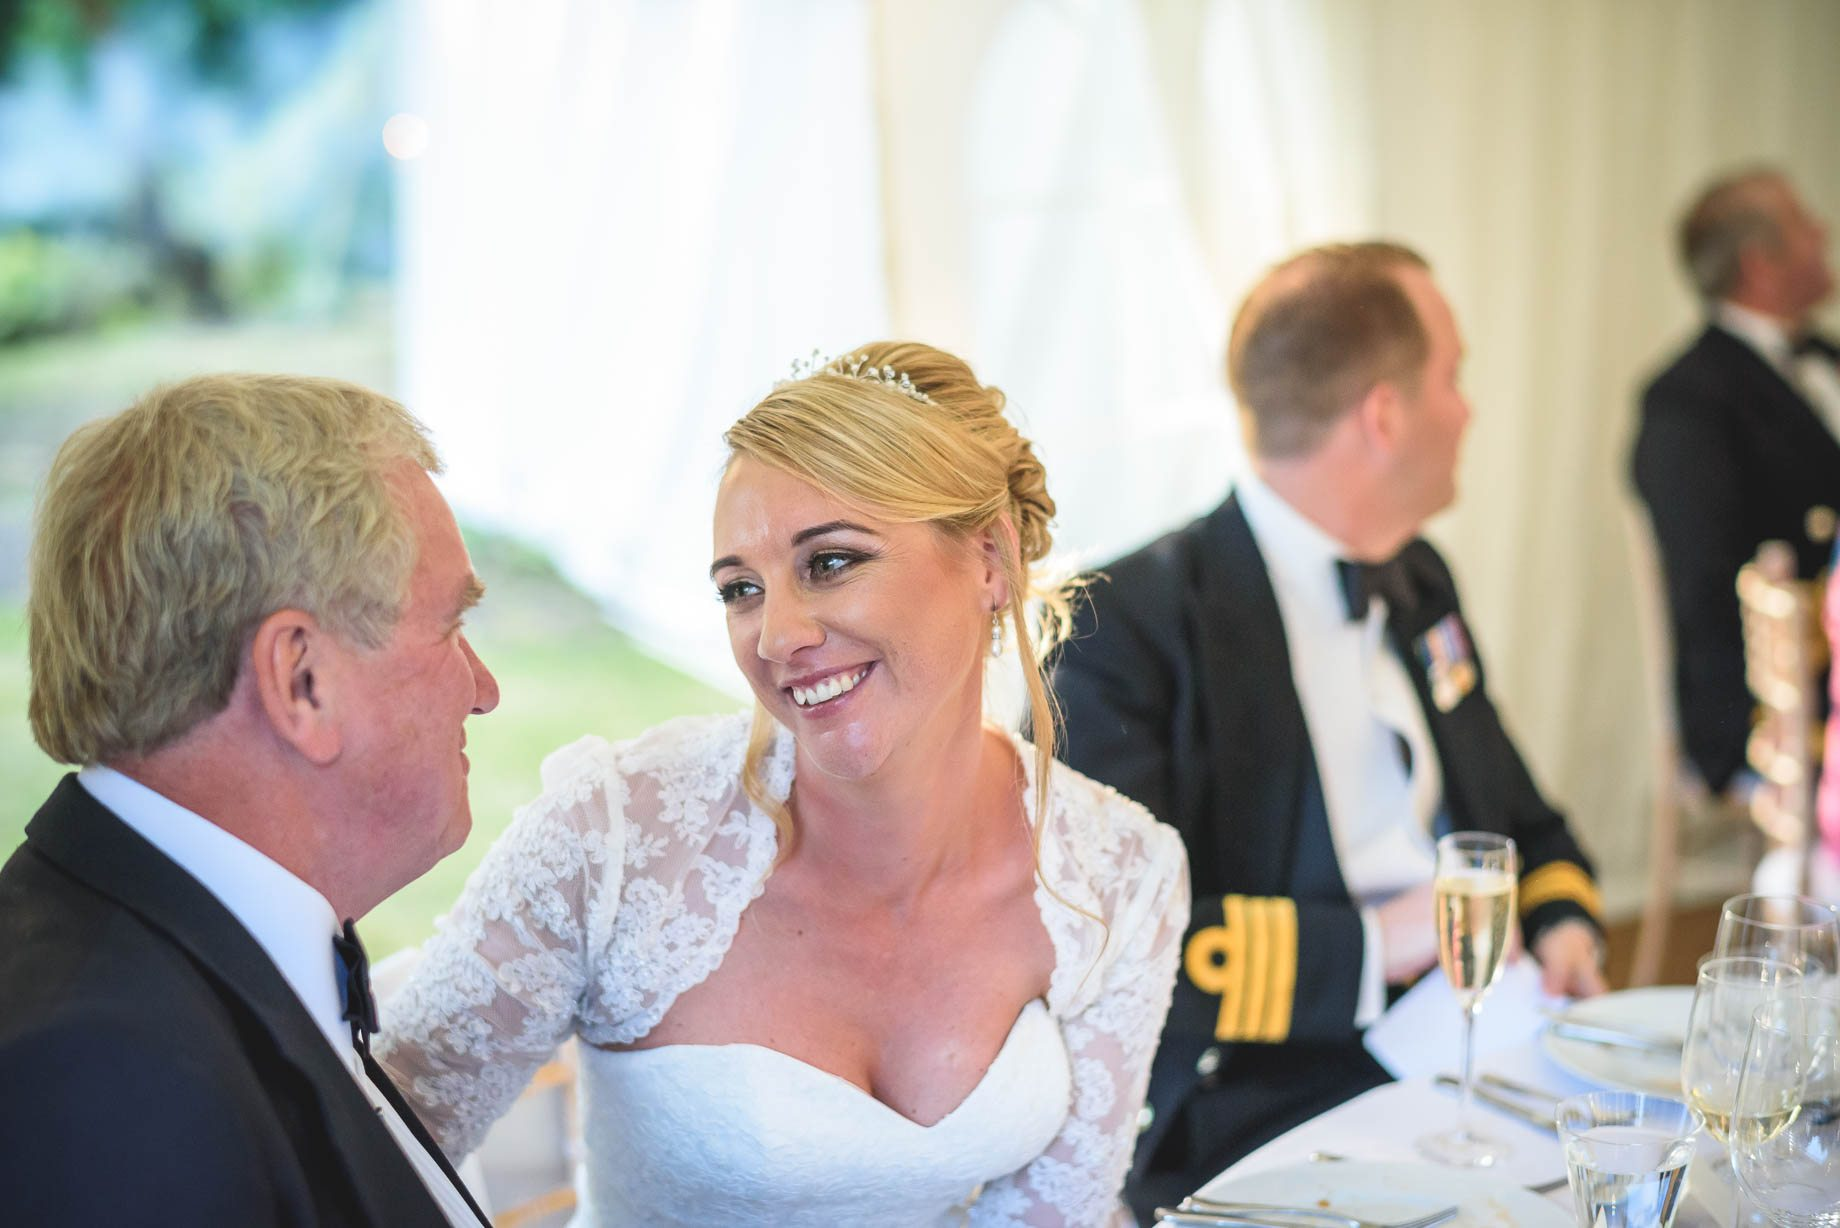 Hampshire wedding photography - Emily and Rob - Guy Collier Photography (156 of 192)